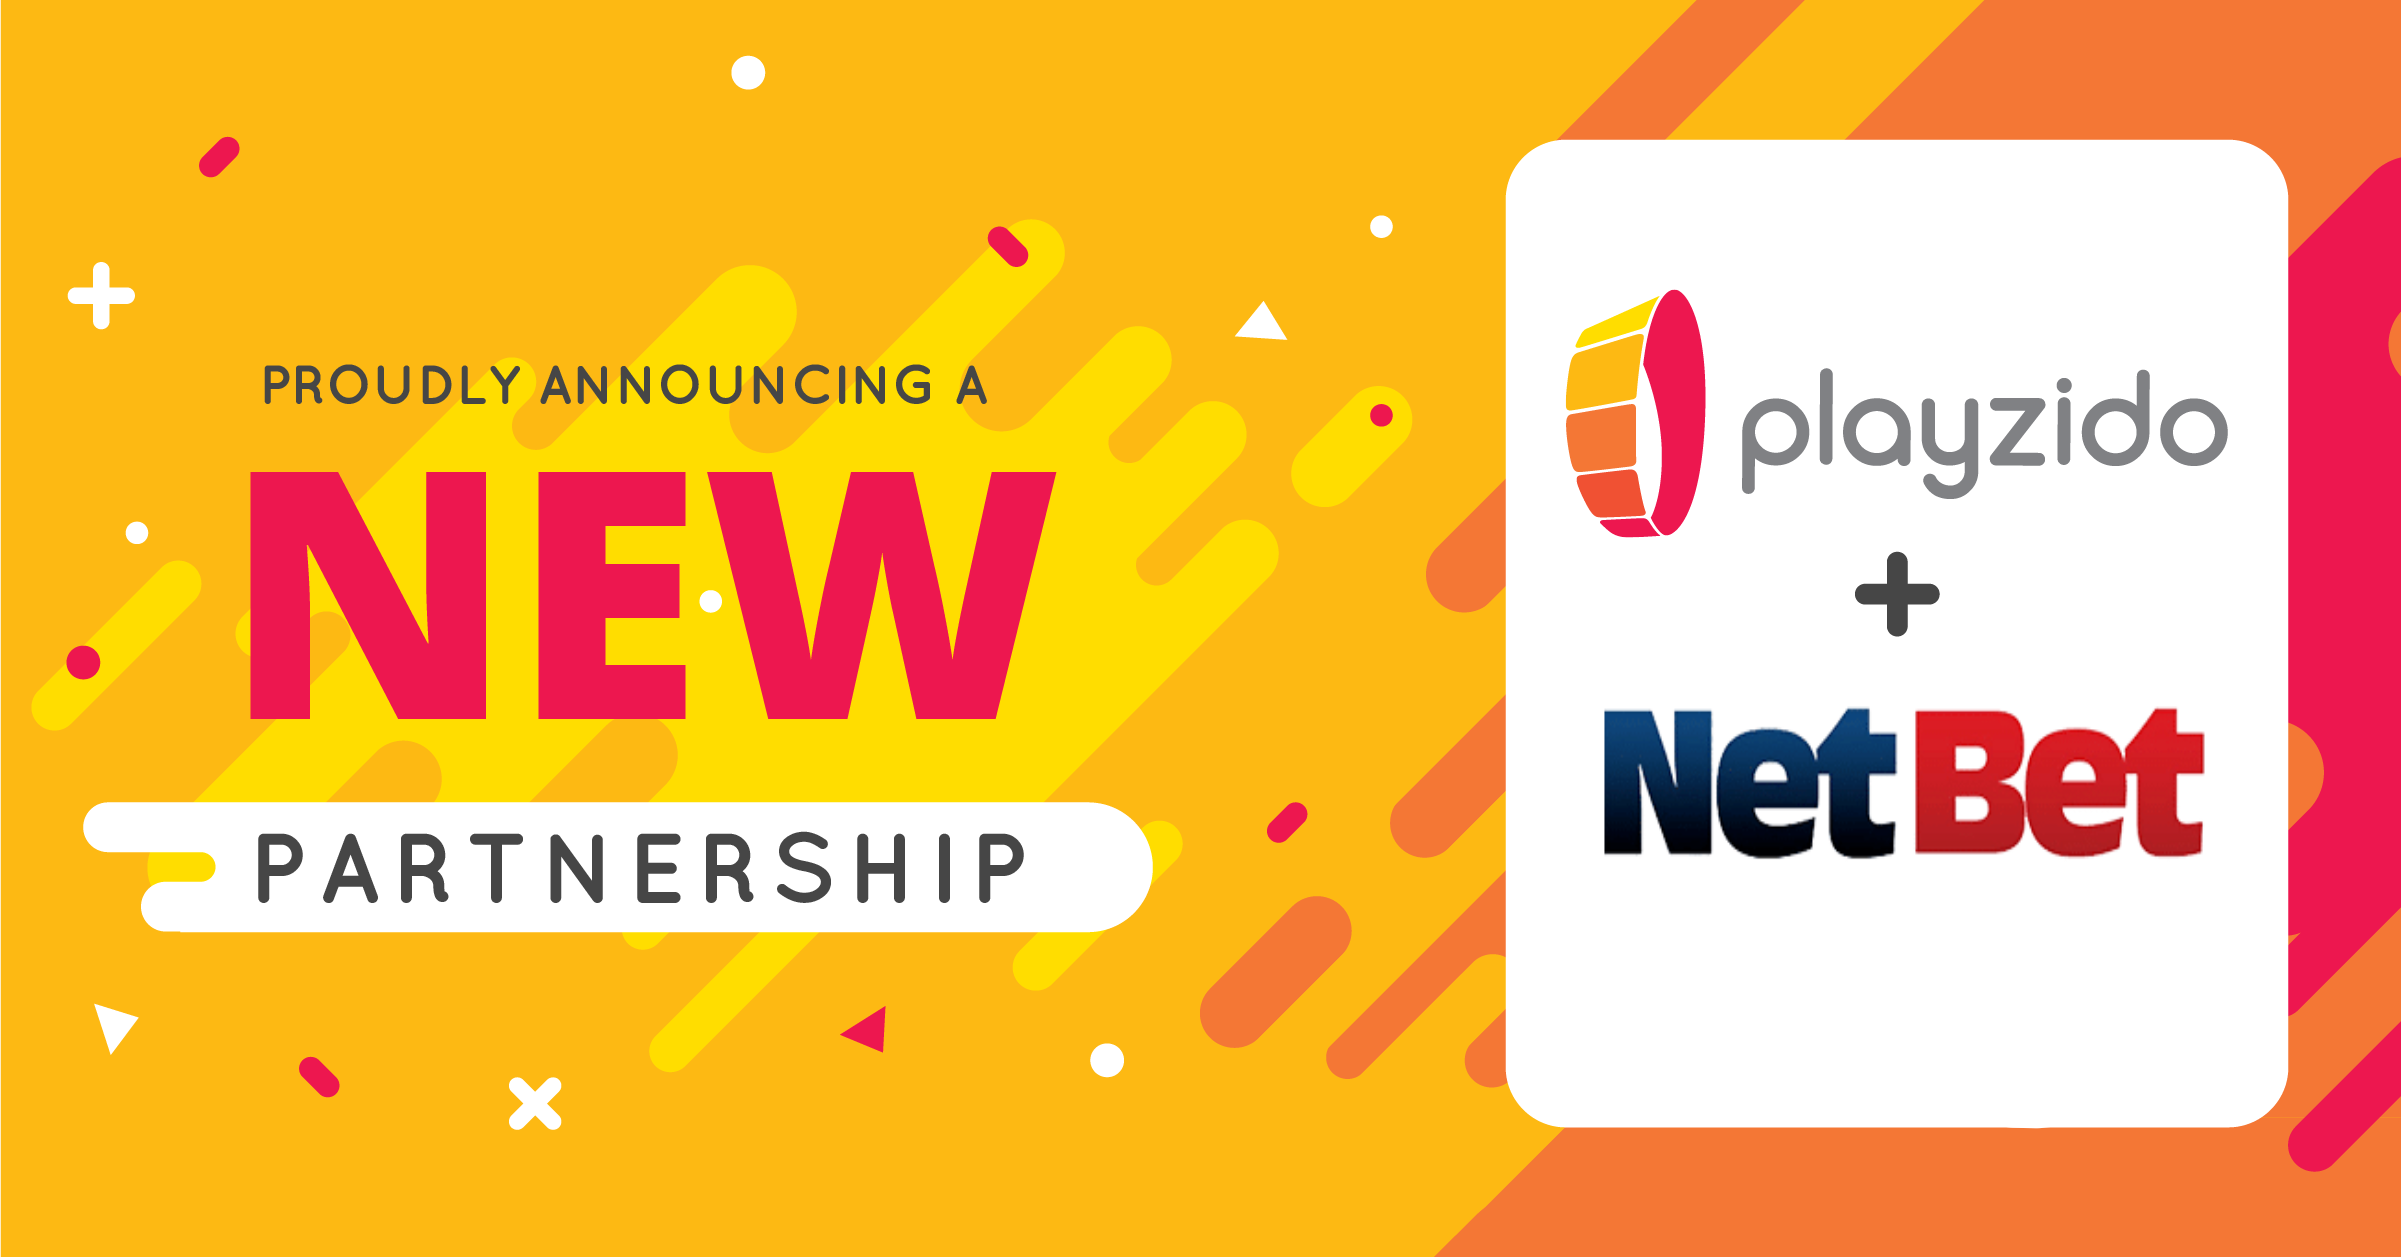 Playzido kick off next phase of operator launches with NetBet